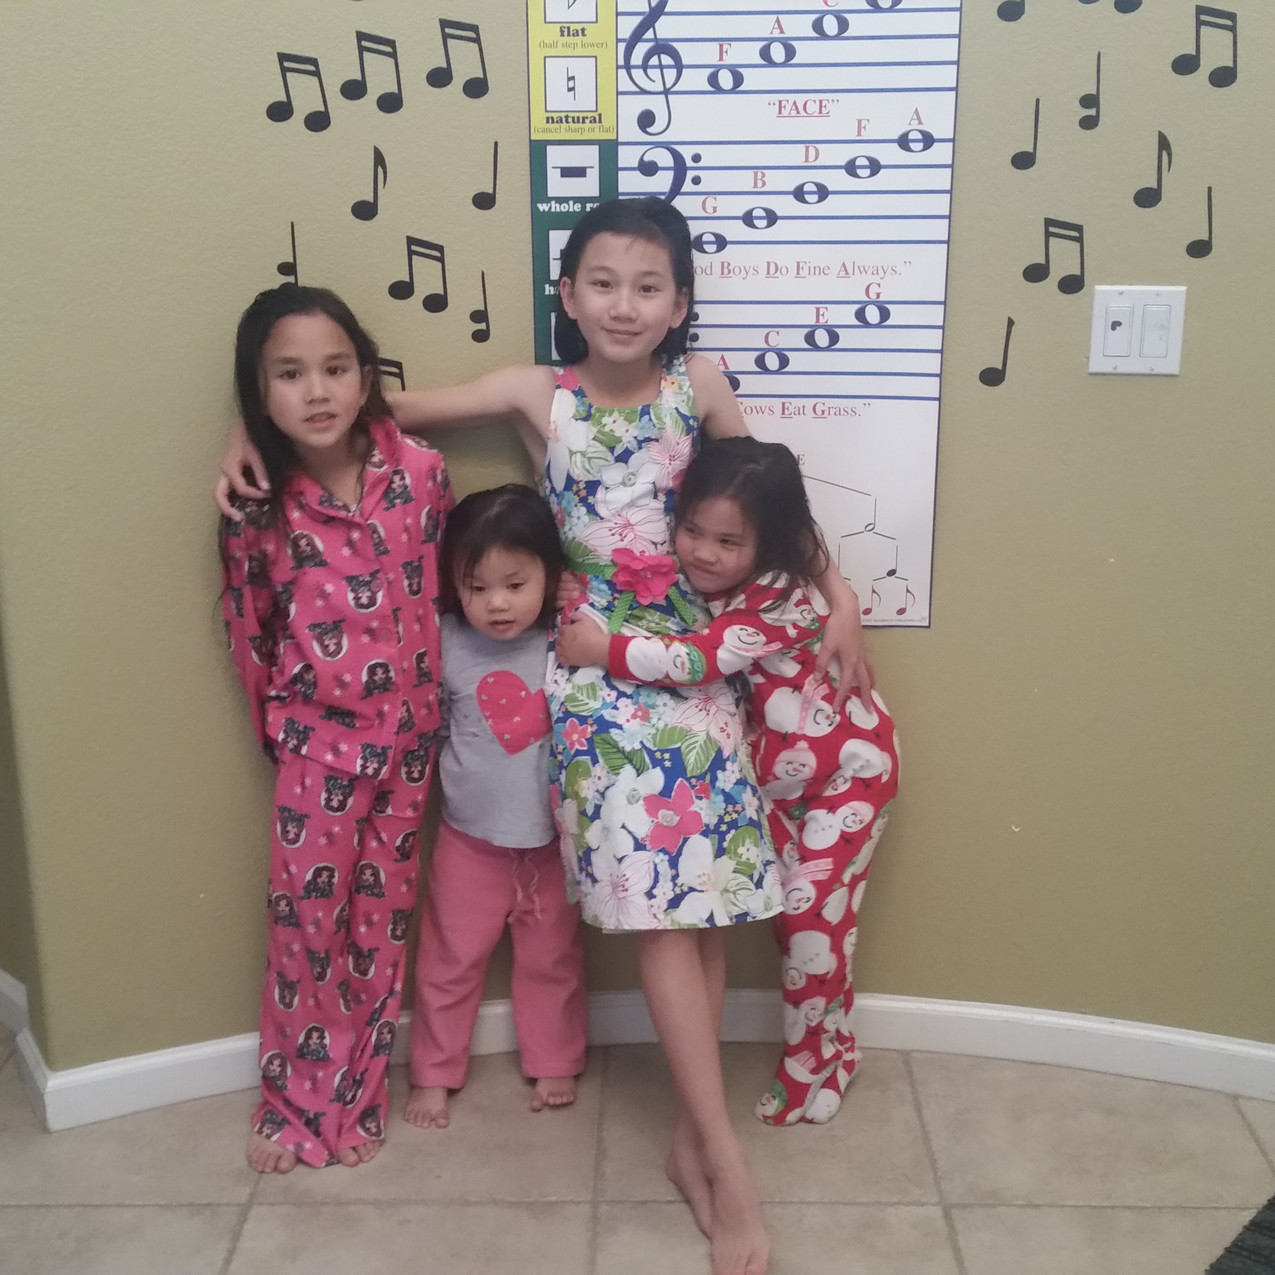 Musical family with hearing loss